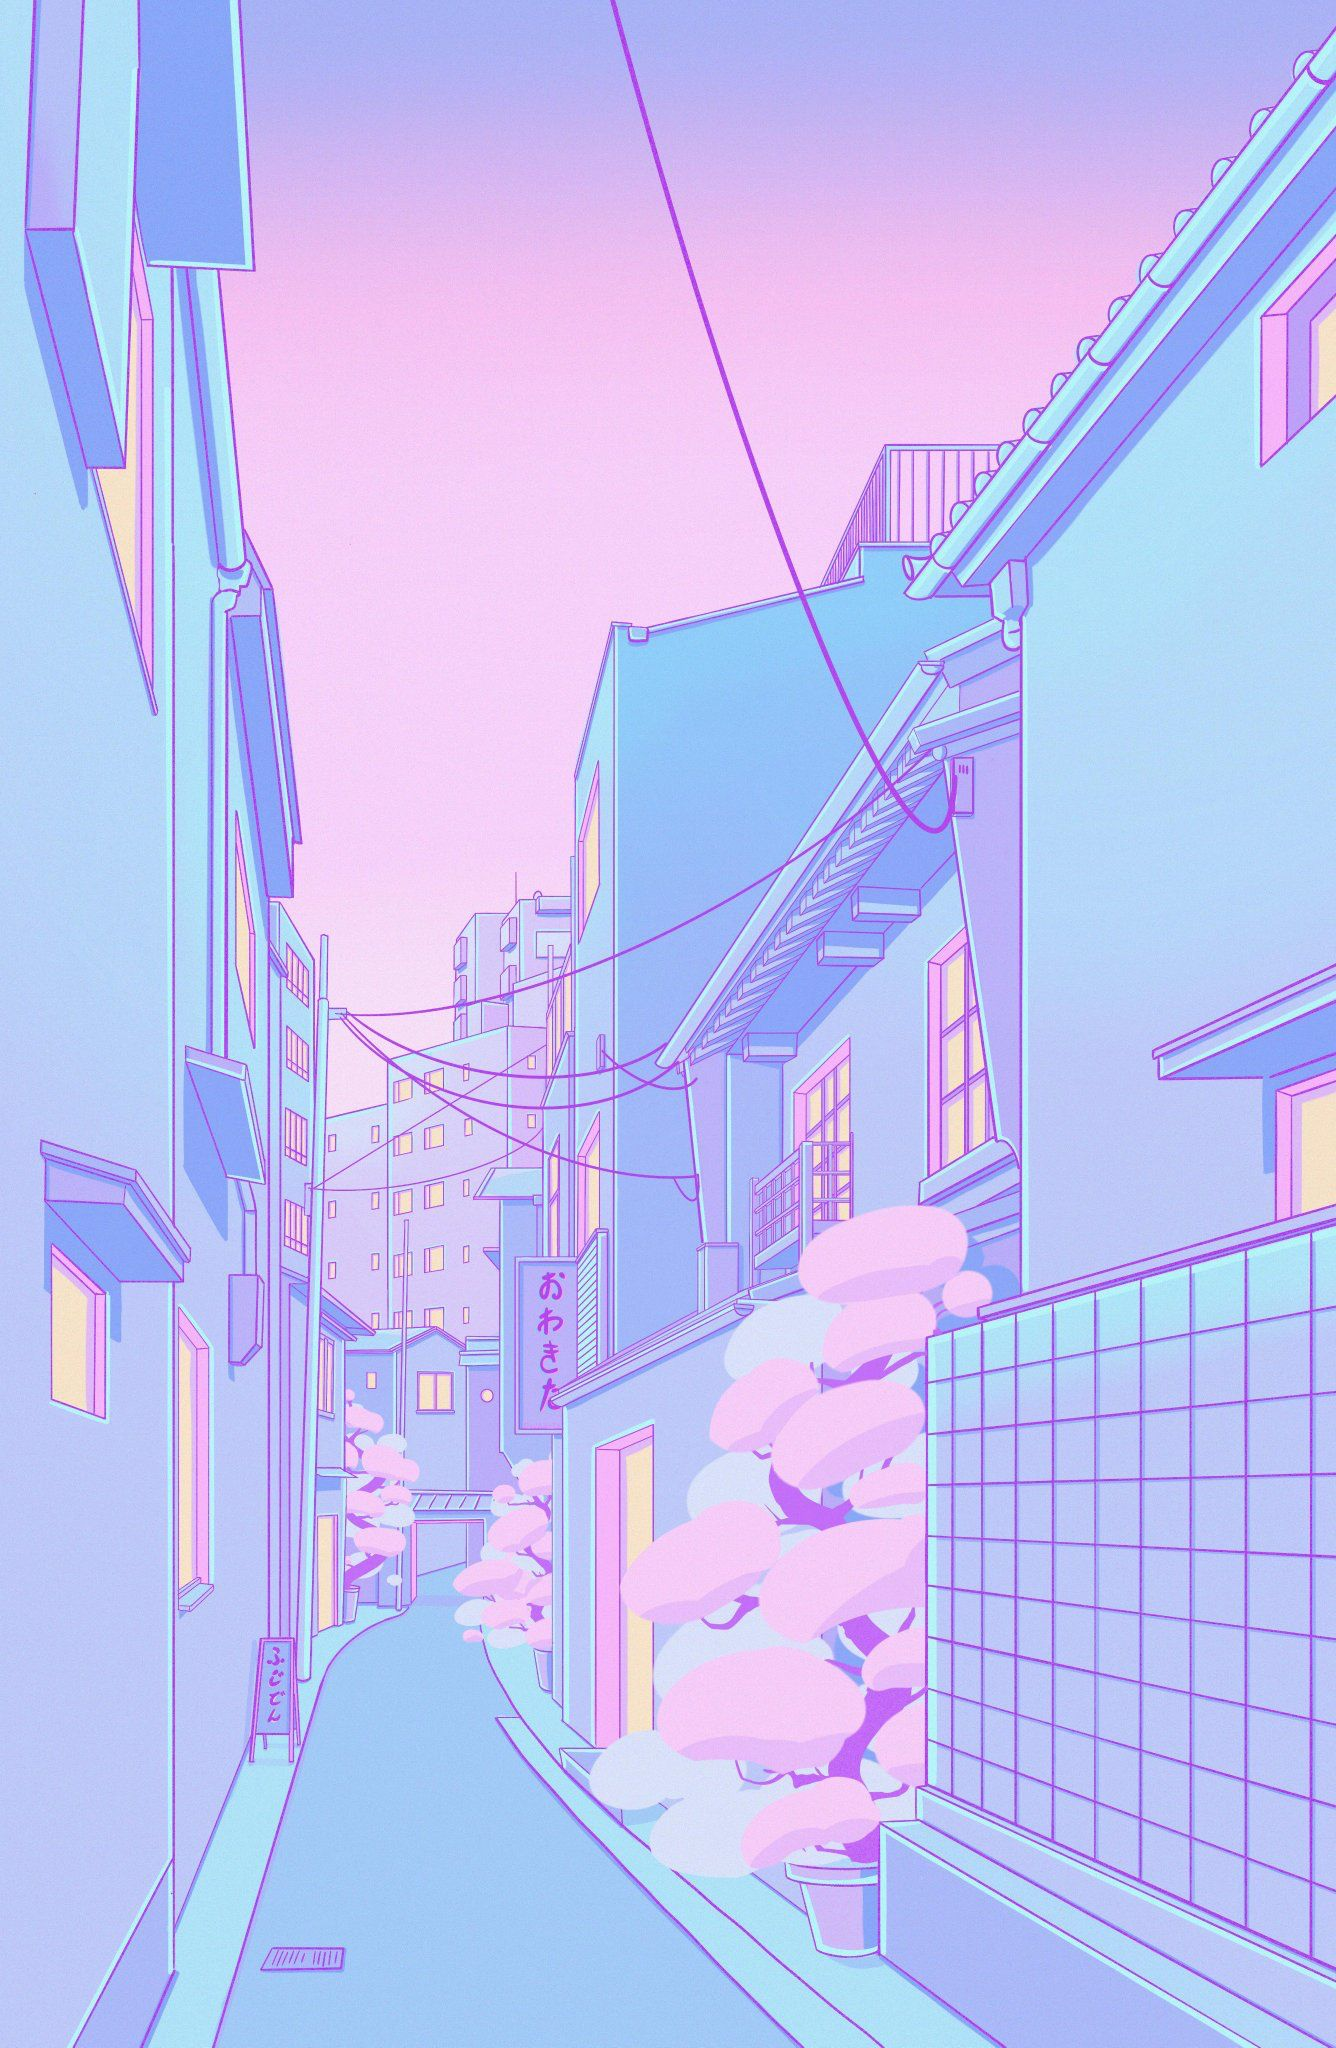 Pin By Liam Levesque On Anime Backgrounds Cute Pastel Wallpaper Vaporwave Wallpaper Aesthetic Pastel Wallpaper